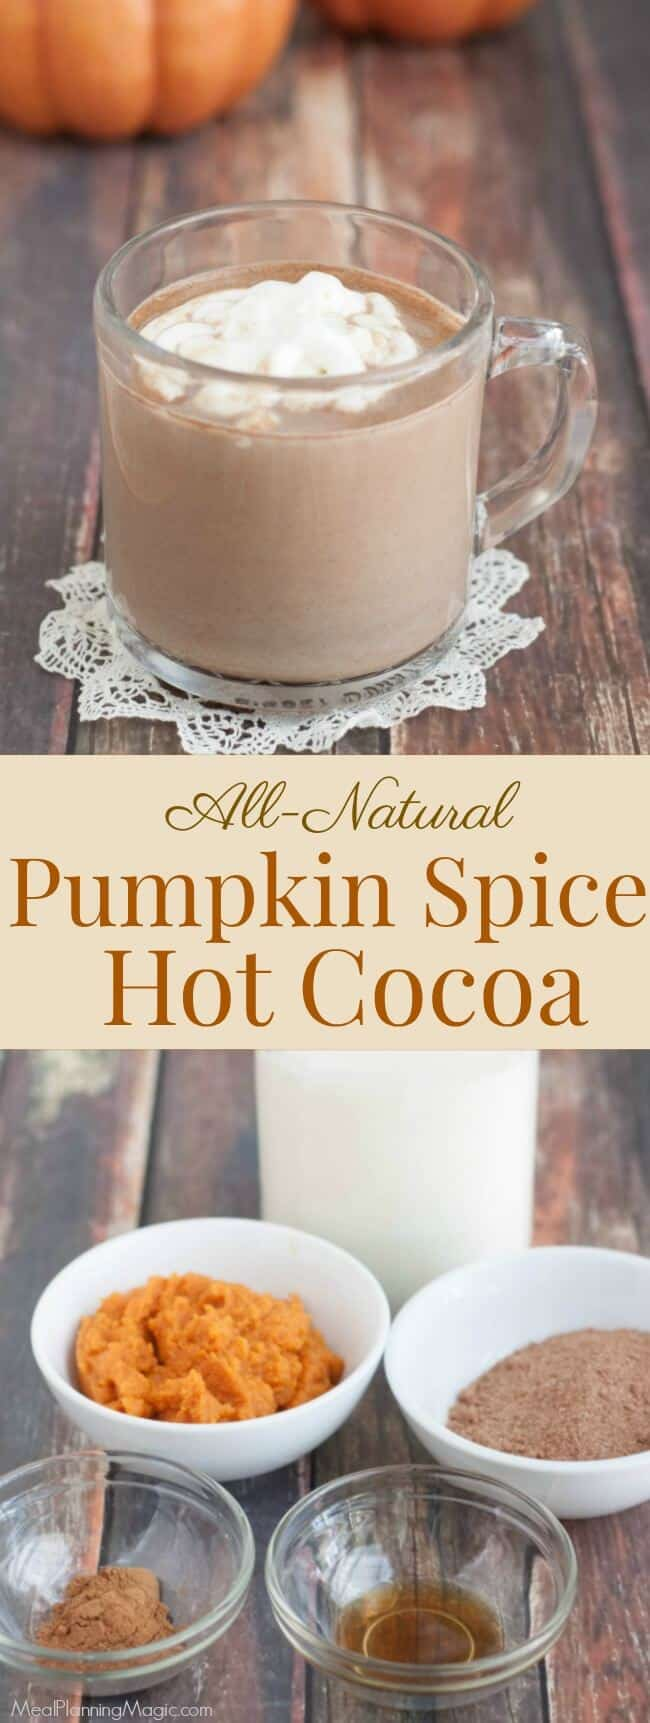 Capture the taste of fall with pumpkin and chocolate in this simple and delicious Pumpkin Spice Hot Cocoa recipe. Makes enough to share--if you're willing to!